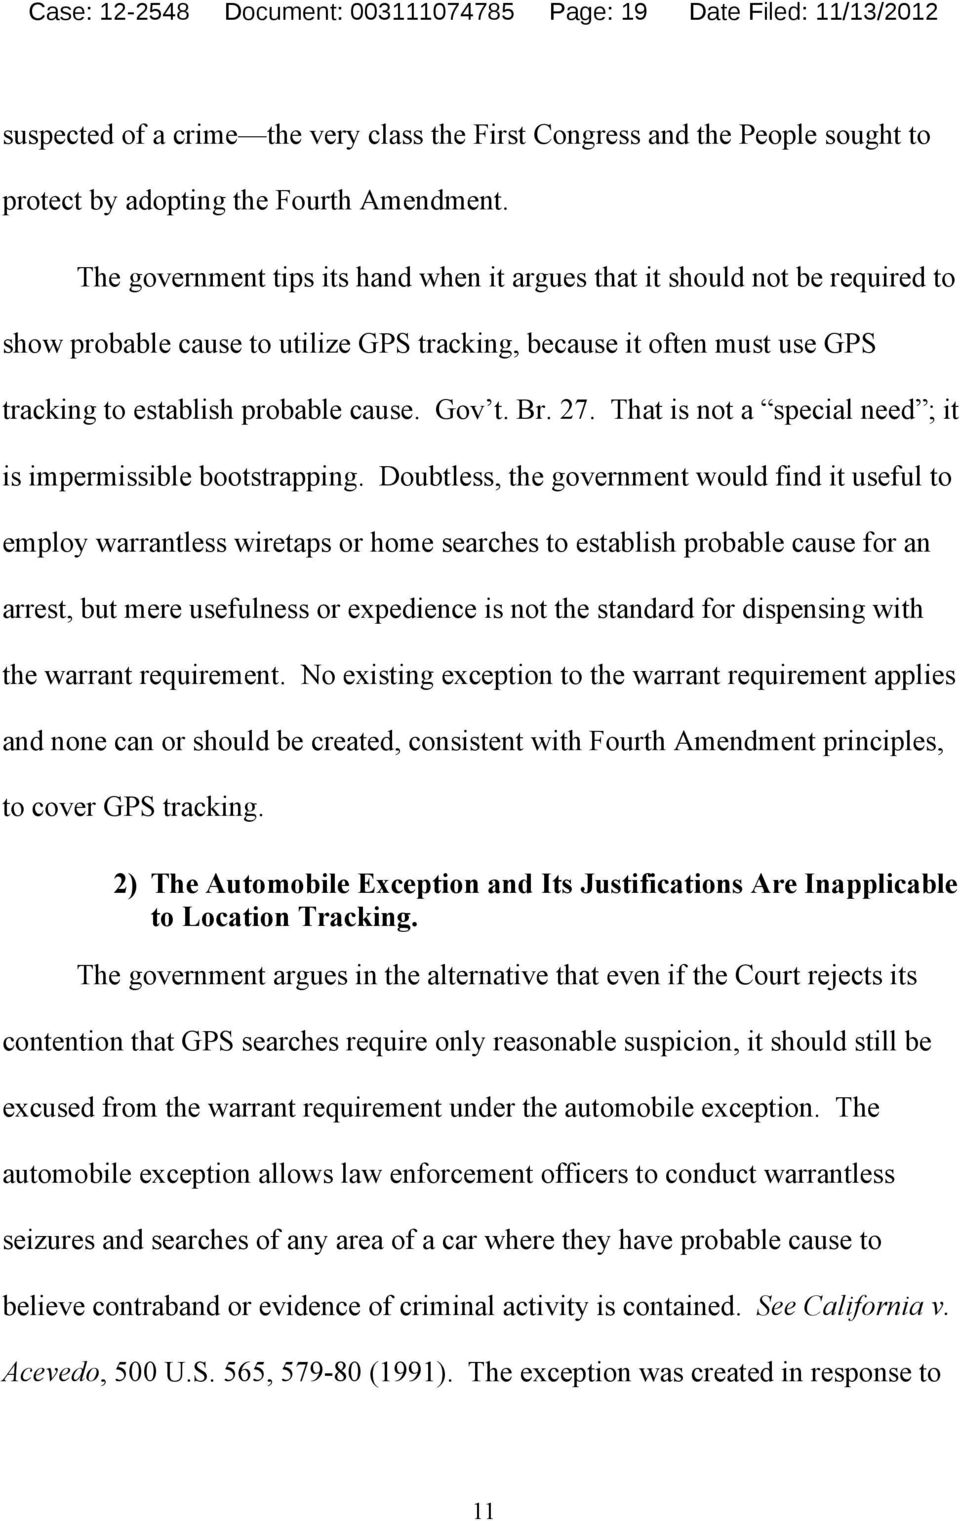 The government tips its hand when it argues that it should not be required to show probable cause to utilize GPS tracking, because it often must use GPS tracking to establish probable cause. Gov t.